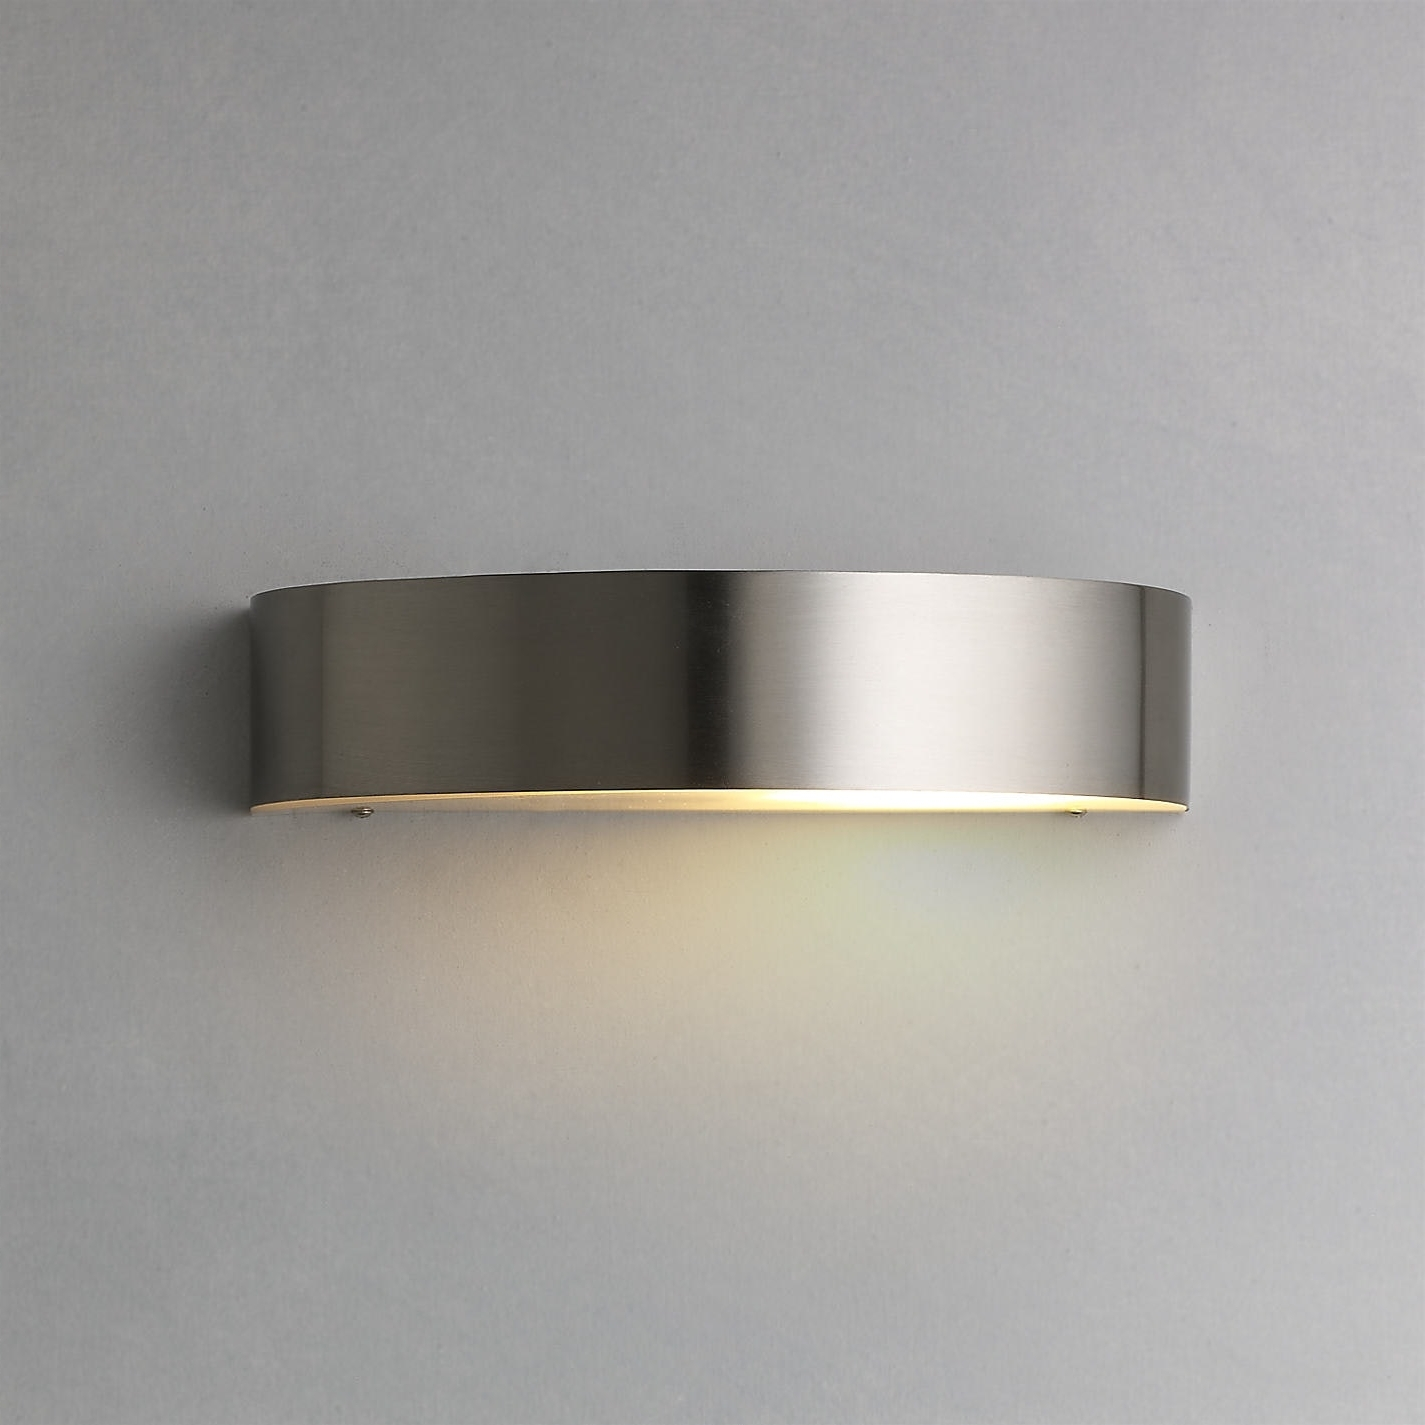 2019 Outdoor Wall Lights At John Lewis Regarding Bathroom Wall Lights John Lewis Lighting Debenhams Dunelm Laura (View 2 of 20)